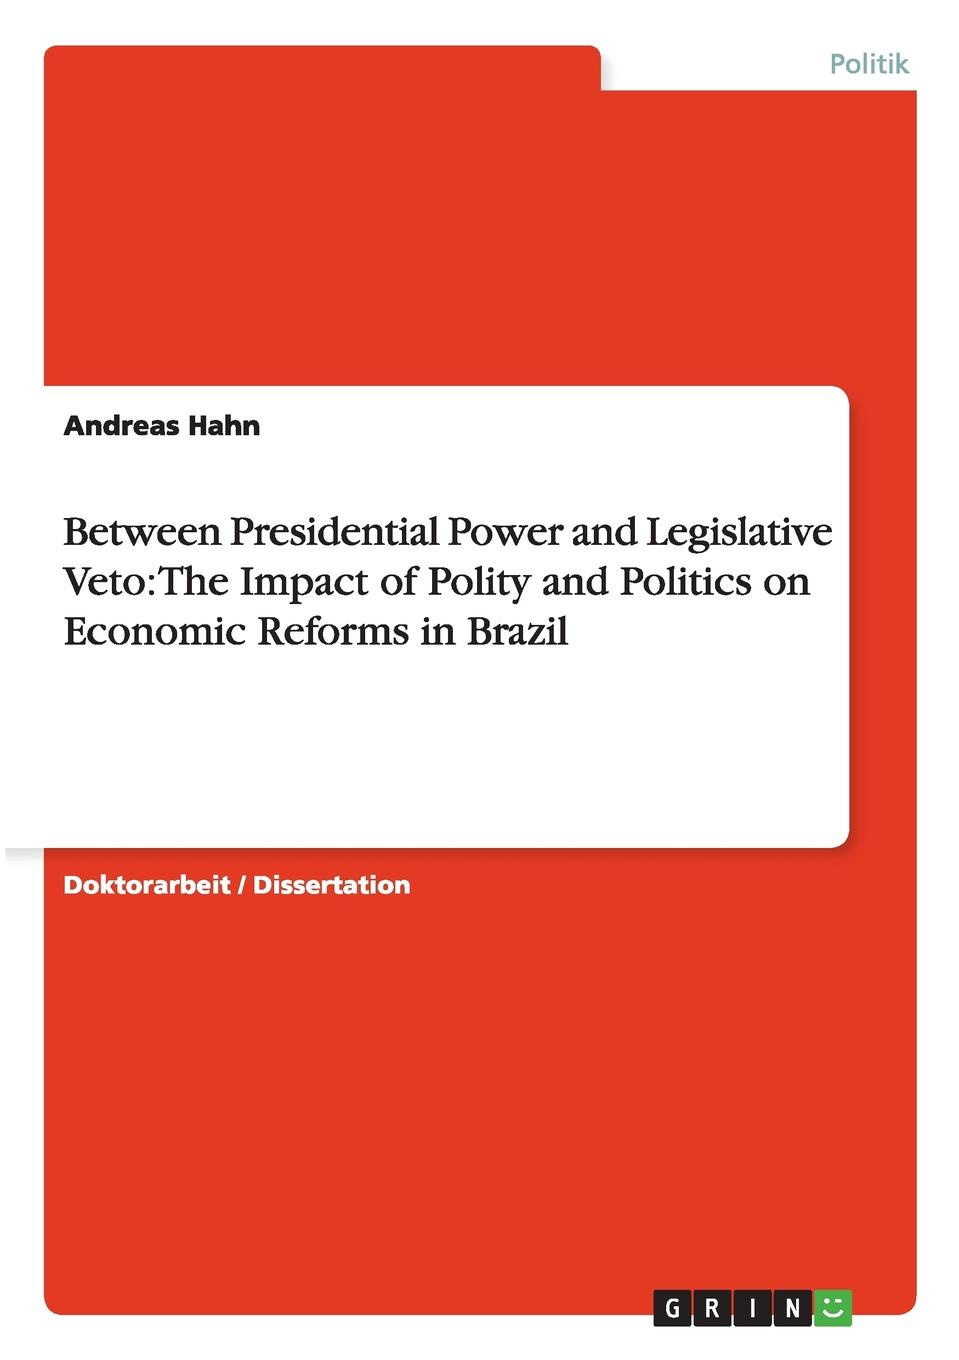 Andreas Hahn Between Presidential Power and Legislative Veto. The Impact of Polity and Politics on Economic Reforms in Brazil katharina werner the impact of children and marital status on happiness